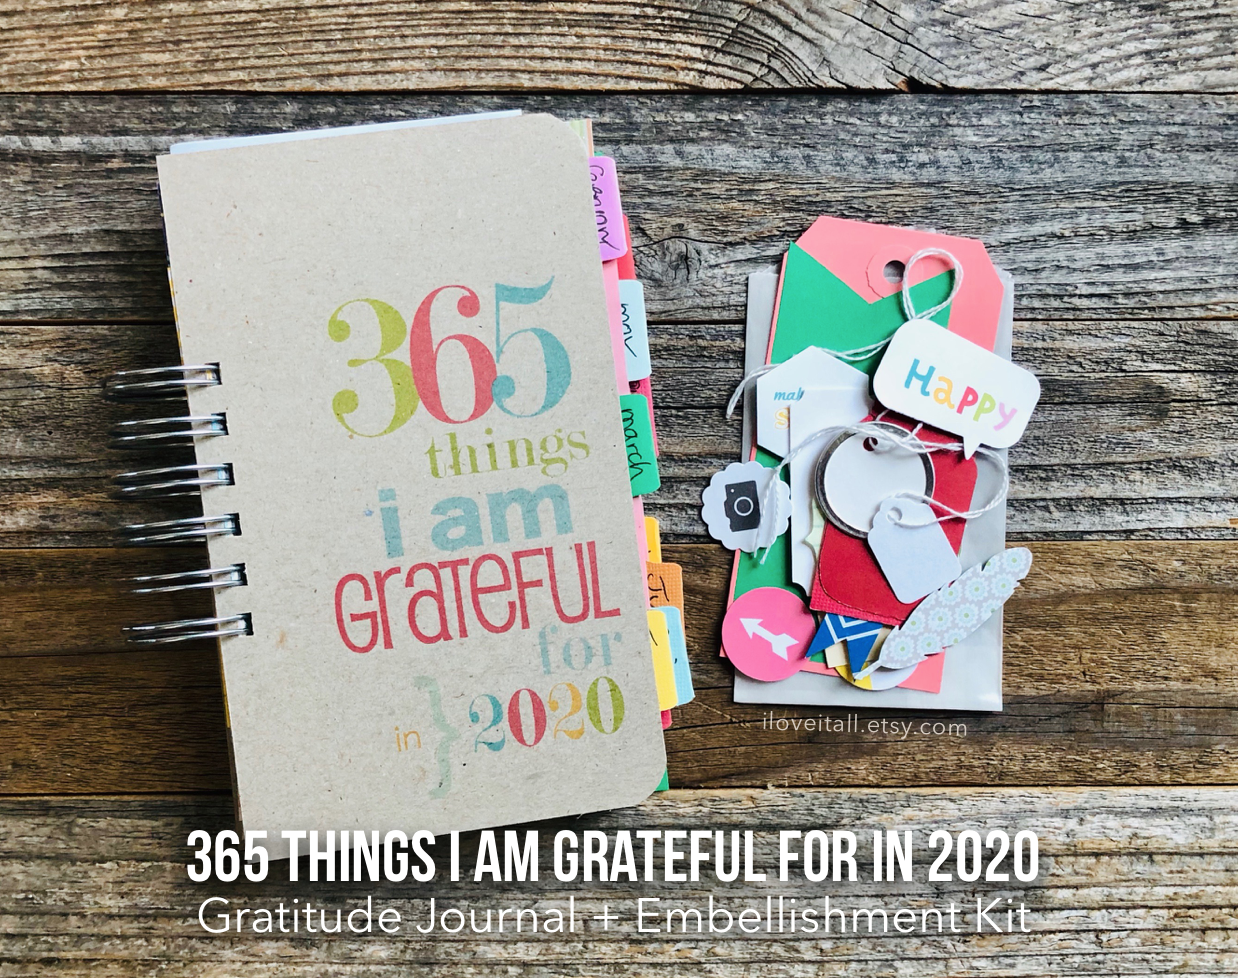 #Gratitude Journal #2020 #gratitude #journal #journaling #reflection journal #grateful #gratefulness #thankfulness journal #Things I Am Grateful For #365 Things I Am Grateful For